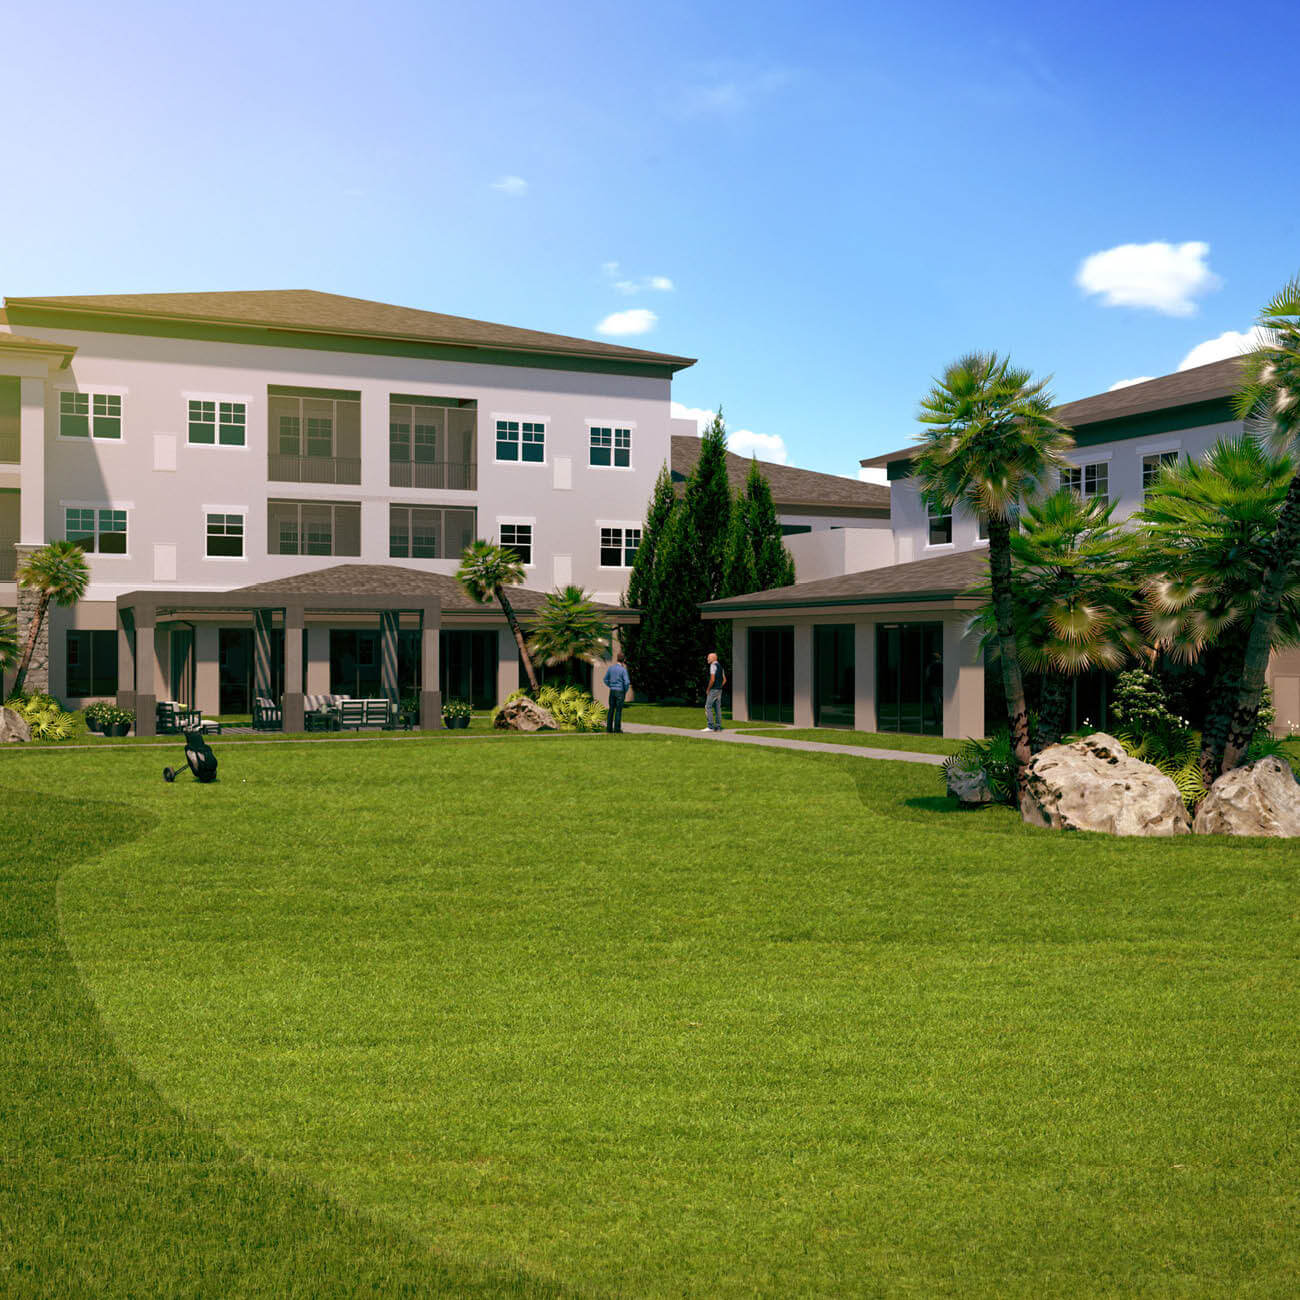 3D rendering of community putting green